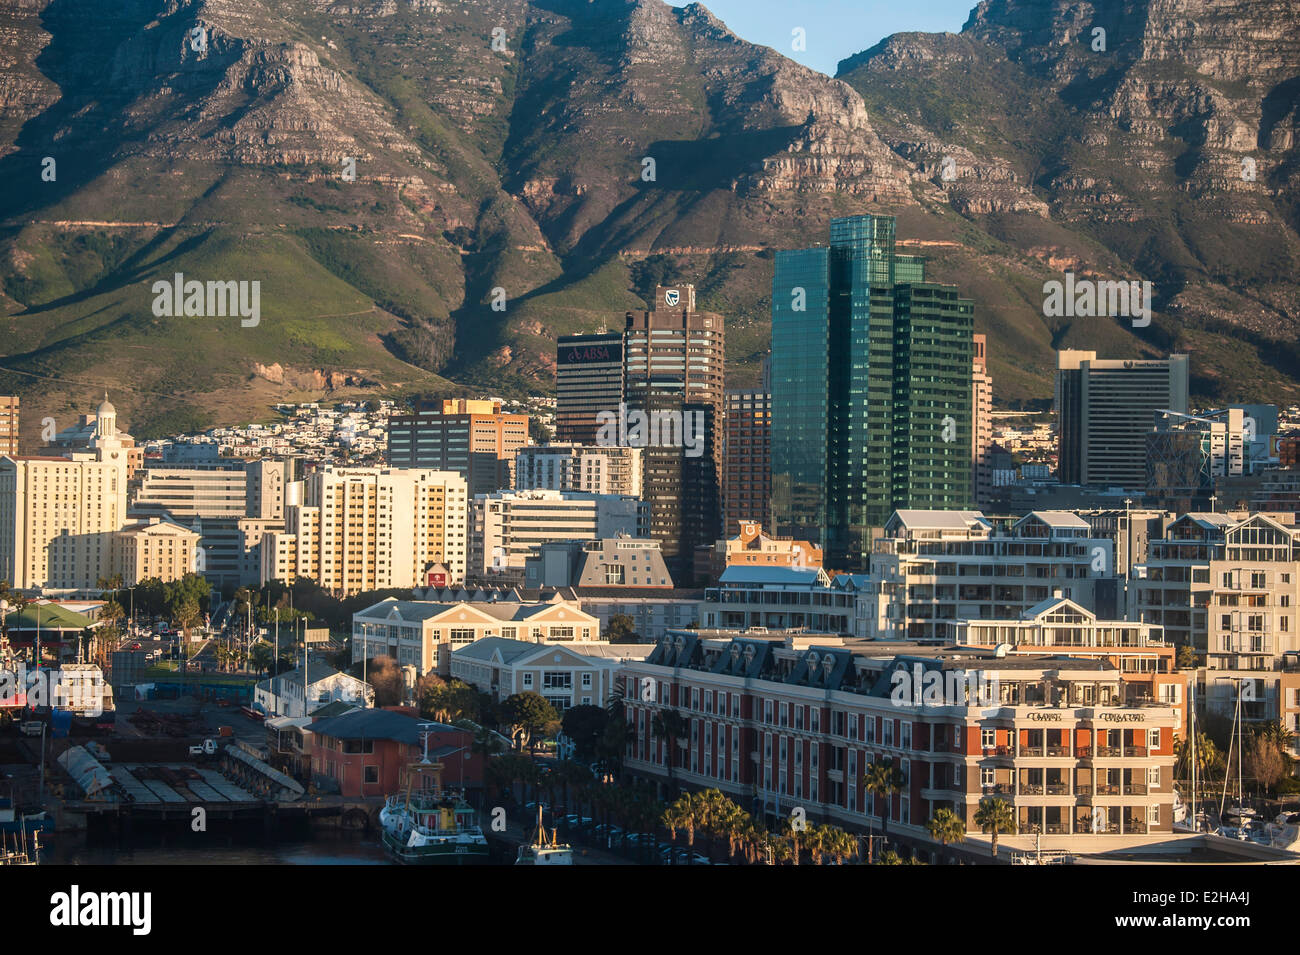 Cape Town city centre with business houses, Cape Town, Western Cape, South Africa - Stock Image